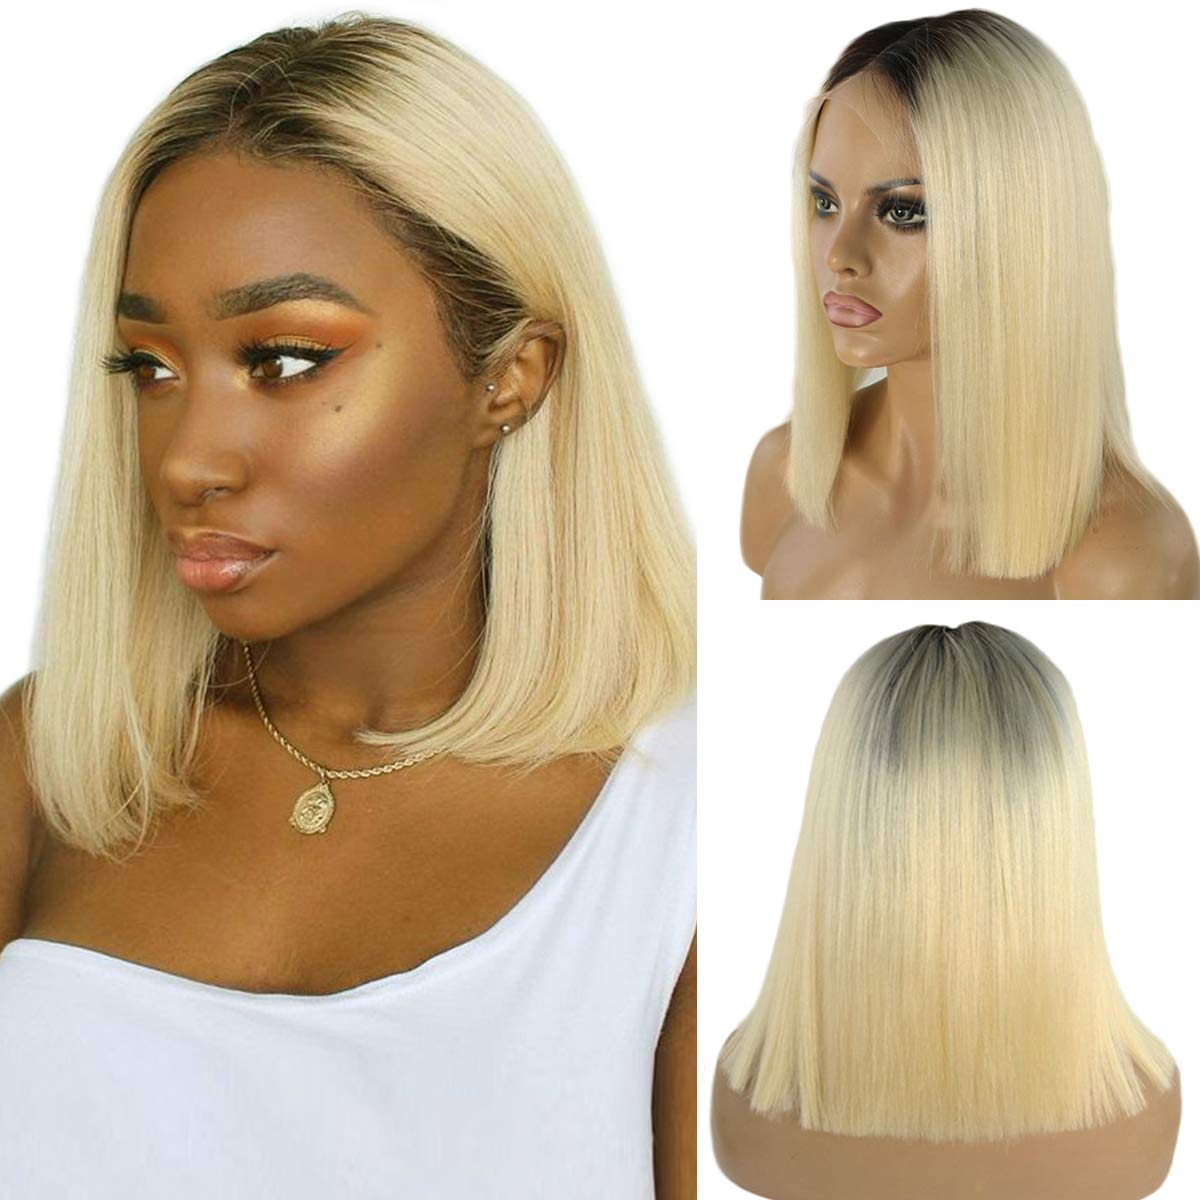 13x4 Short Bob Lace Front Wigs Brazilian Human Hair Ombre Blonde 1B/613 2 Tone Straight Glueless Lace Wig for Black Women Pre Plucked Bleached Knots Unprocessed Virgin Hair 10''